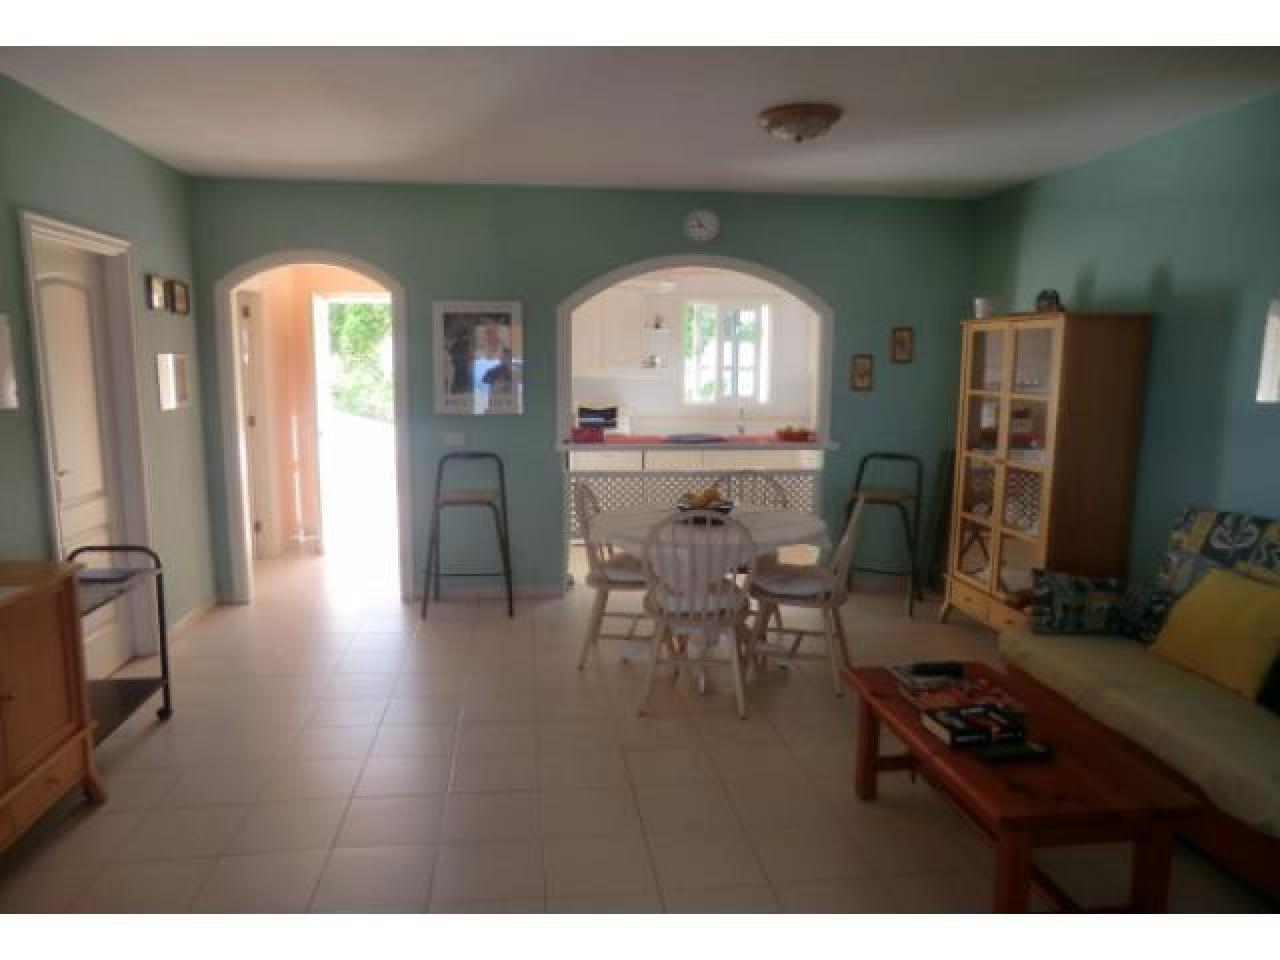 Real estate in Tenerife for sale » #99 - 1